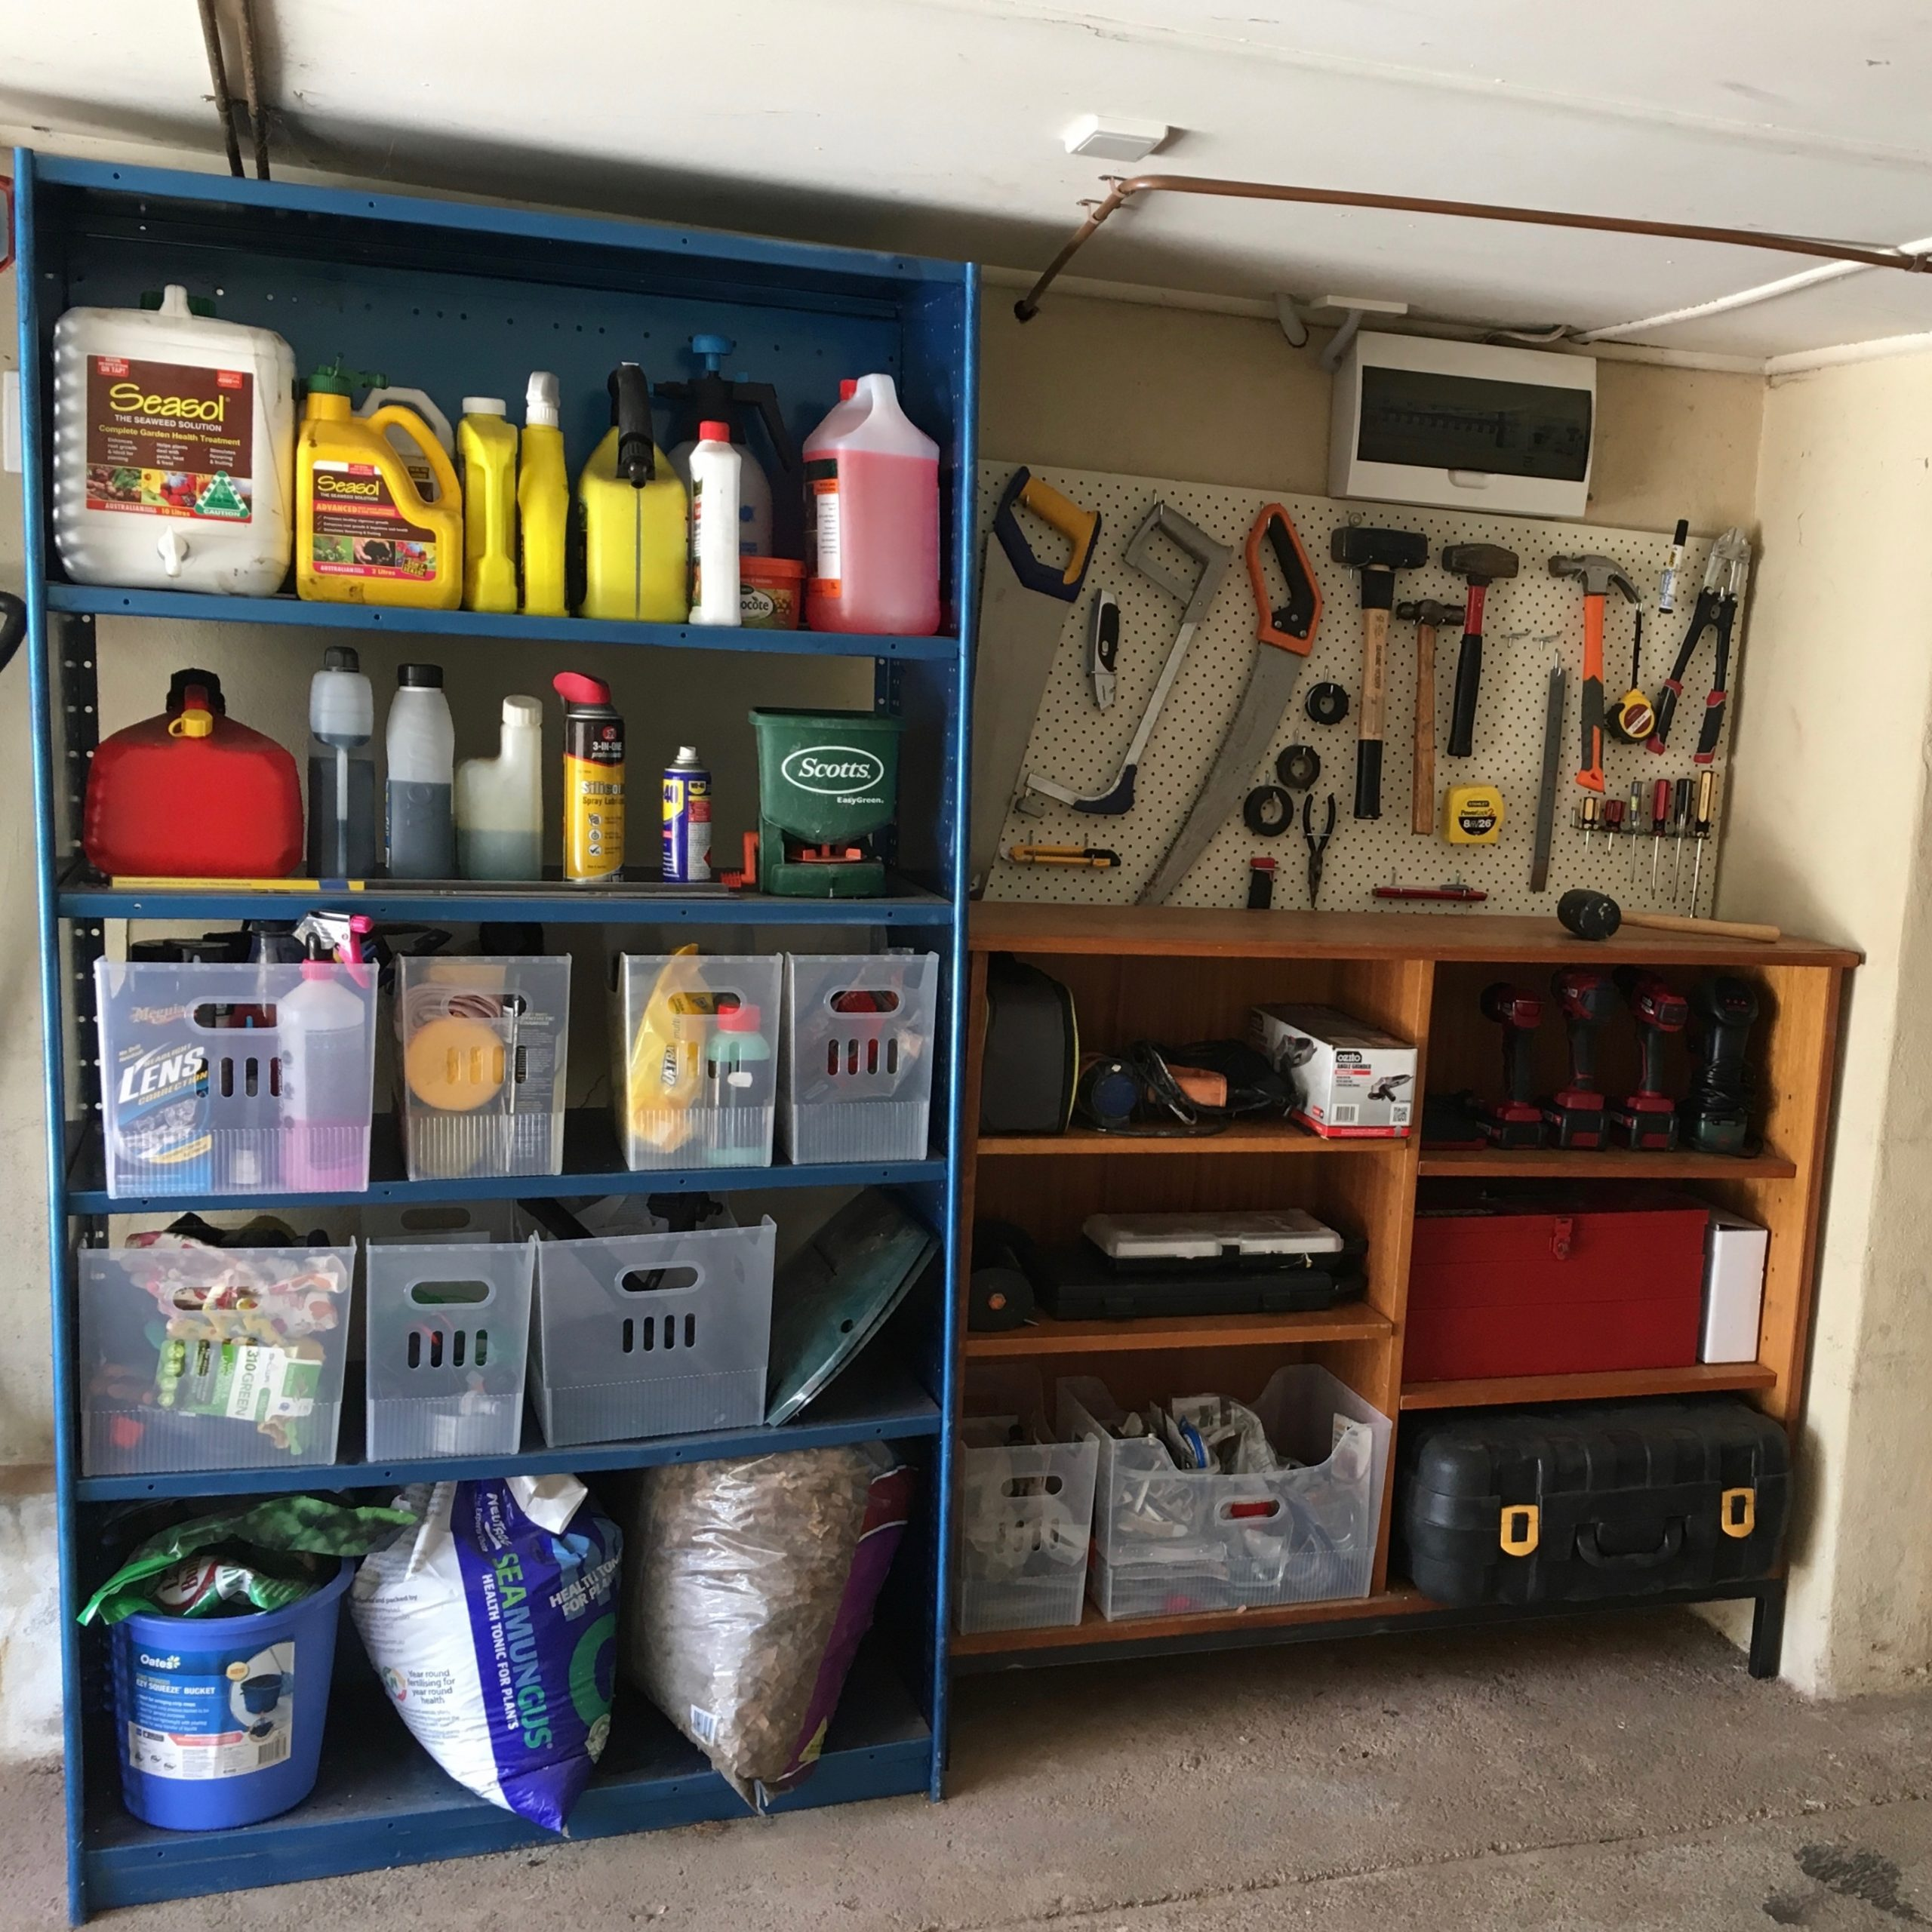 After Garage Declutter and Organisation - The Organising Bee Canberra